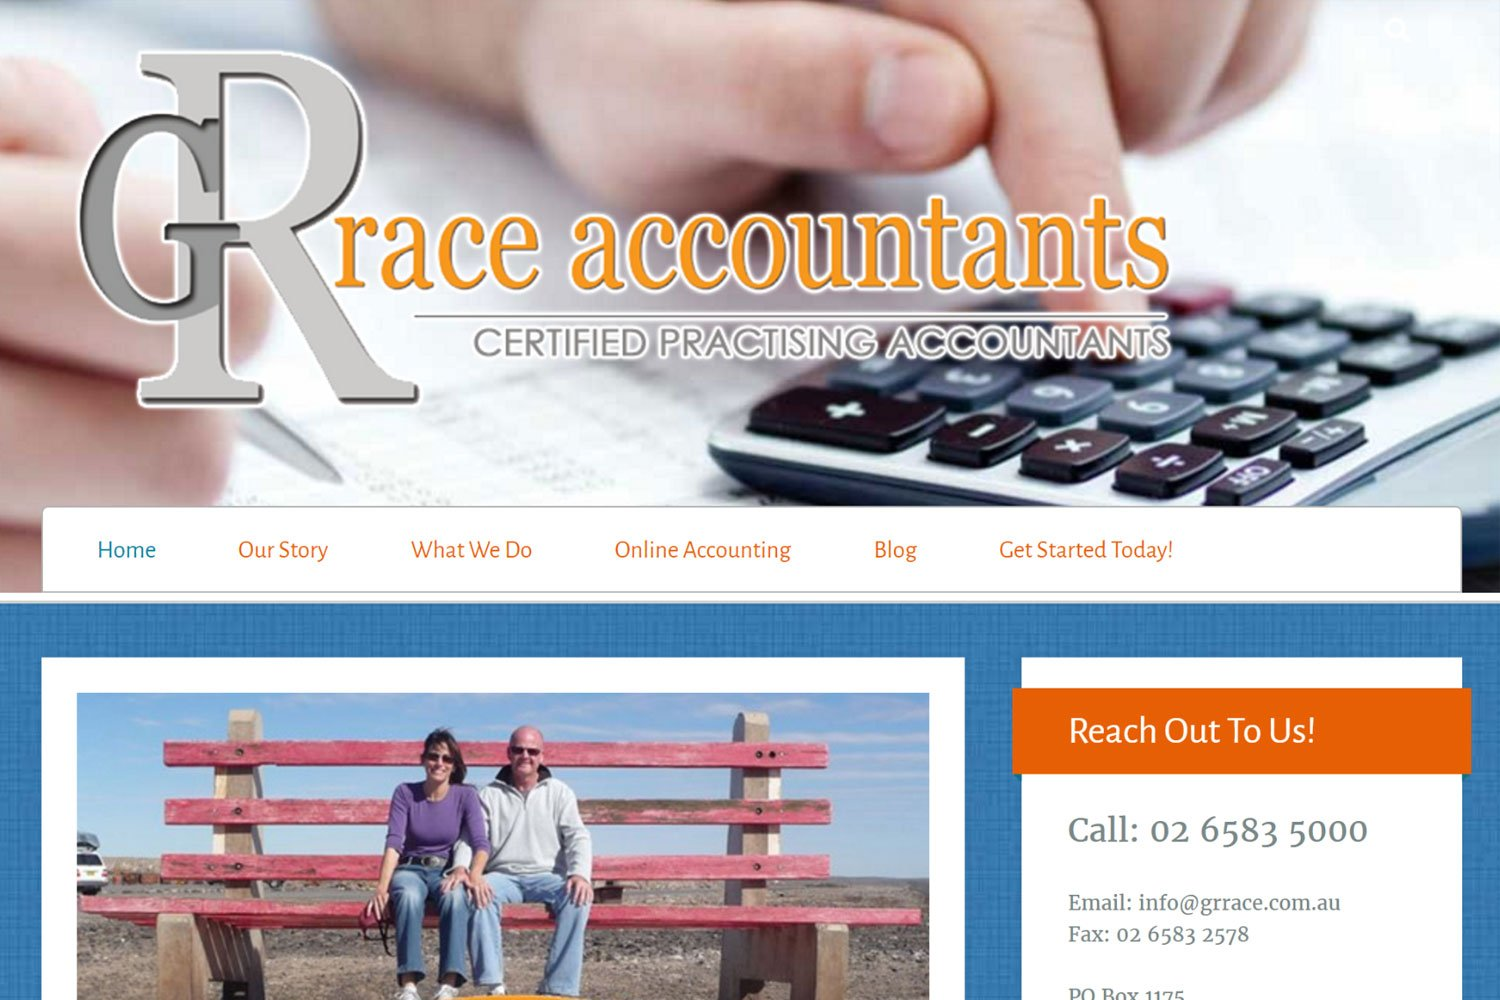 Edgezone Media's Client - GrRace Accountants - www.grrace.com.au